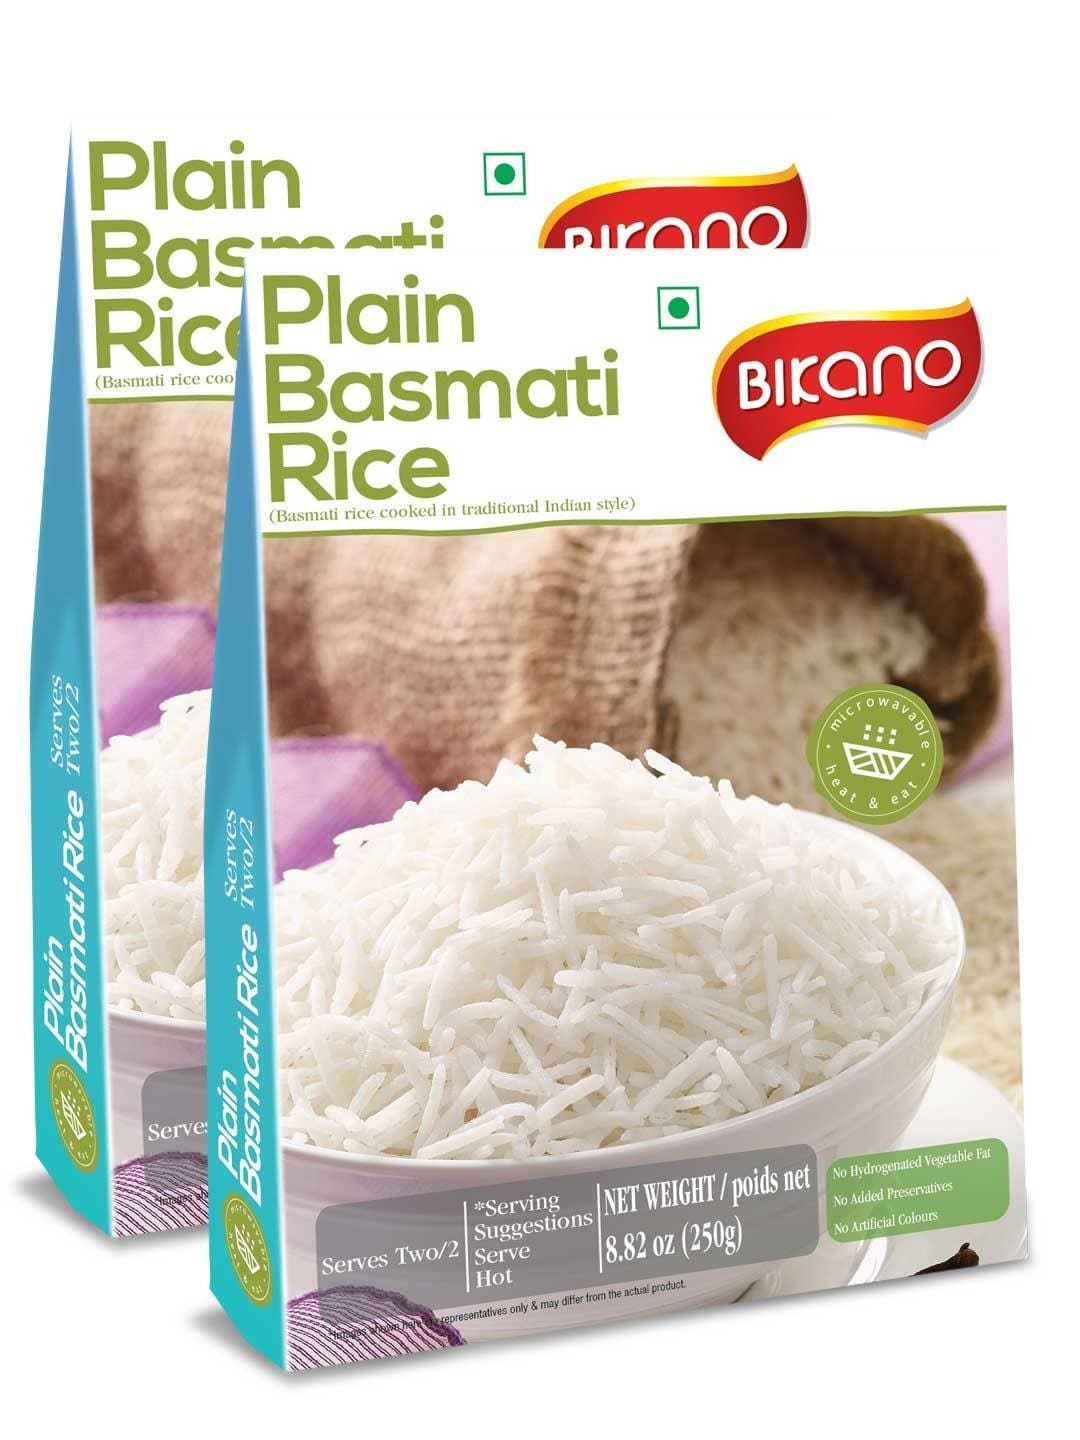 Bikano Plain Basmati Rice